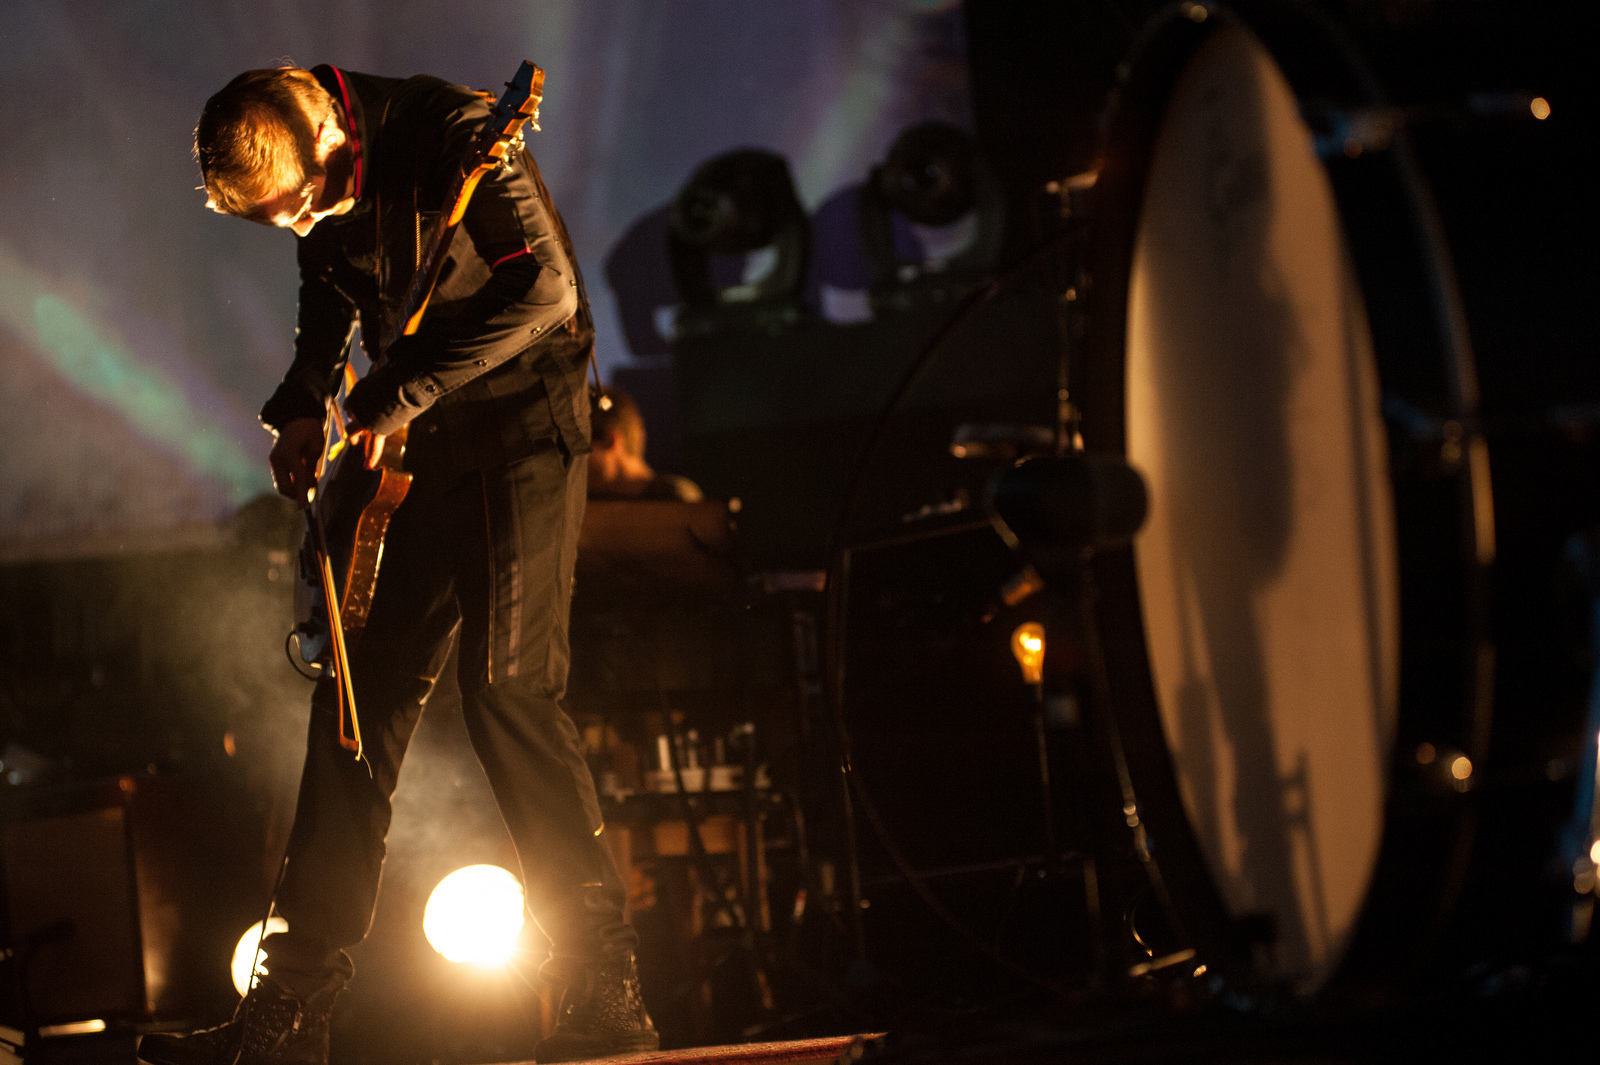 During Sigur Ros' four-year hiatus, Jonsi released the effervescent and uplifting 2010 solo album Go.